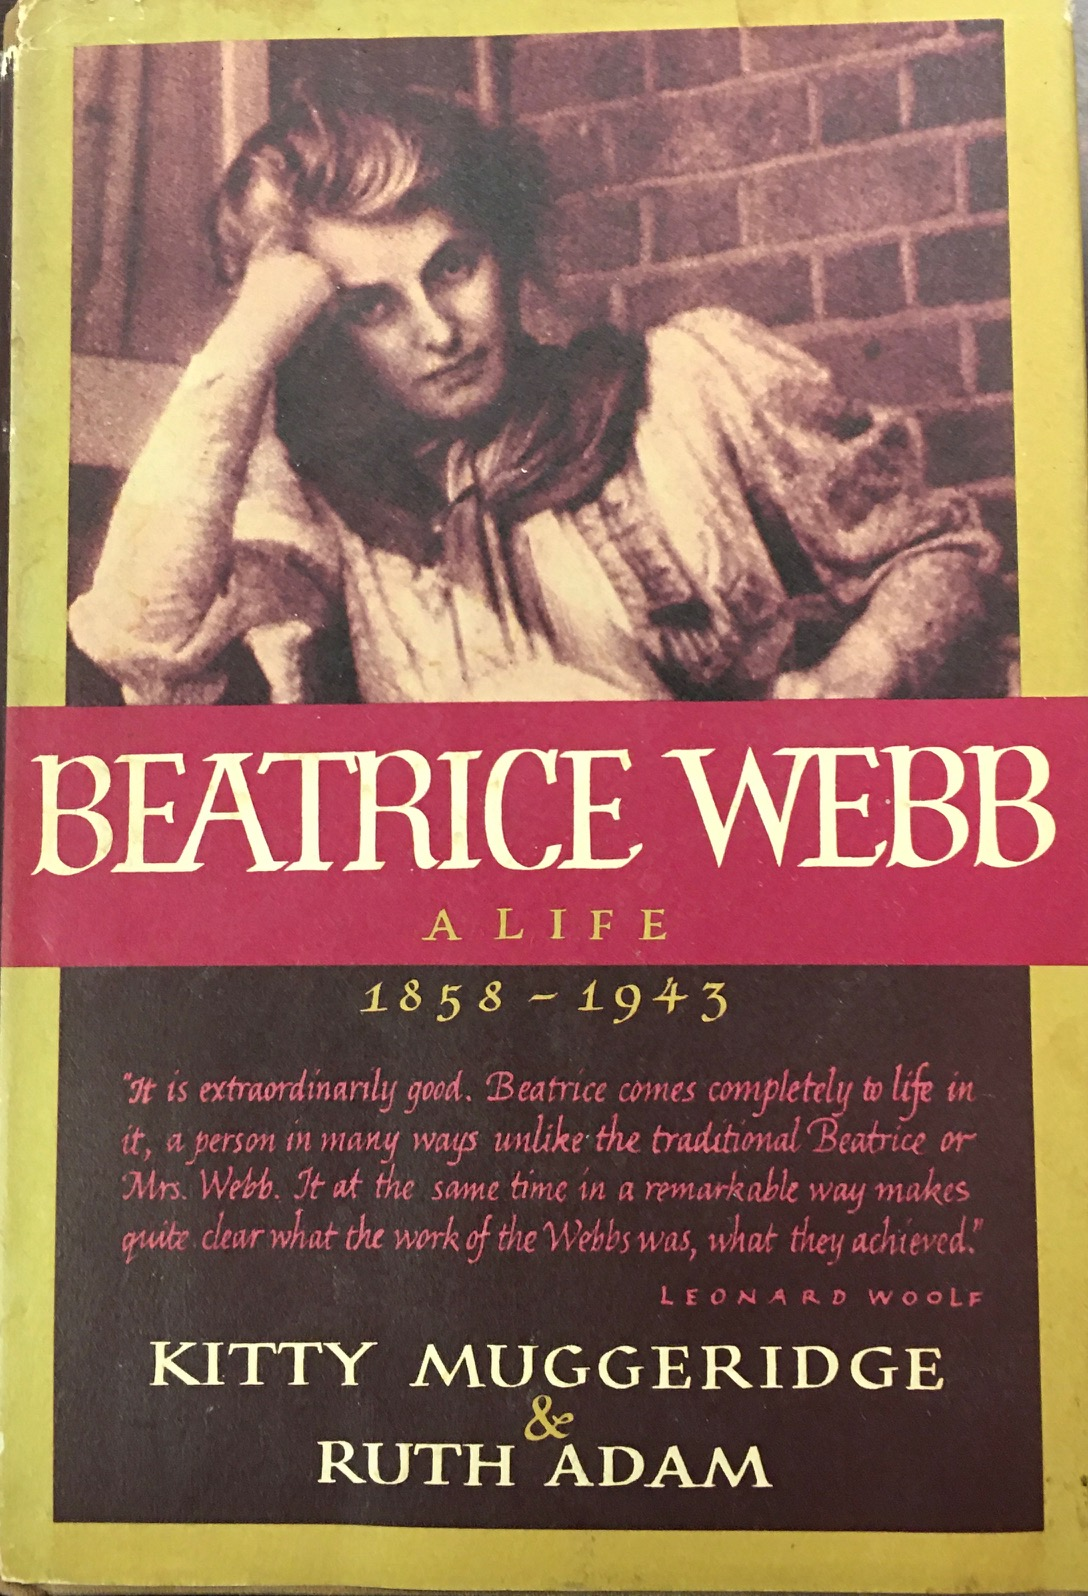 Image for Beatrice Webb A Life, 1858-1943